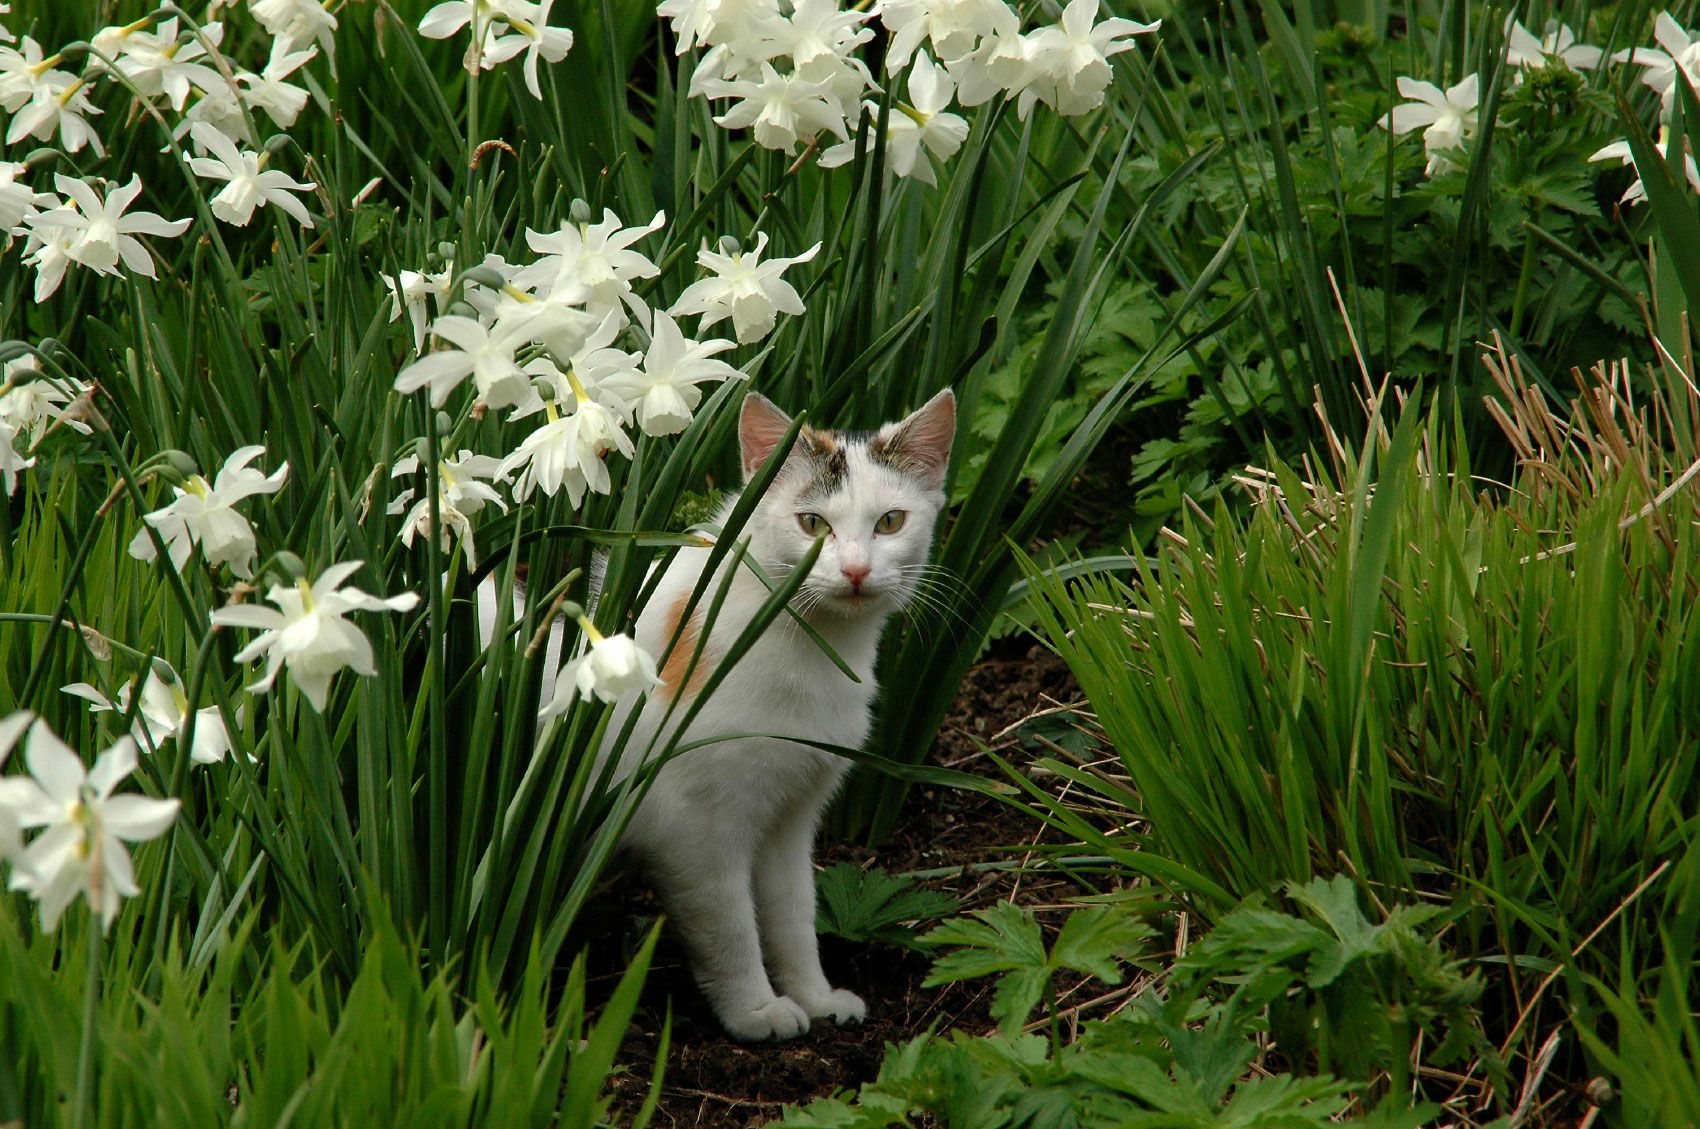 Cat Repellent How To Keep Cats Out Of The Yard Plants